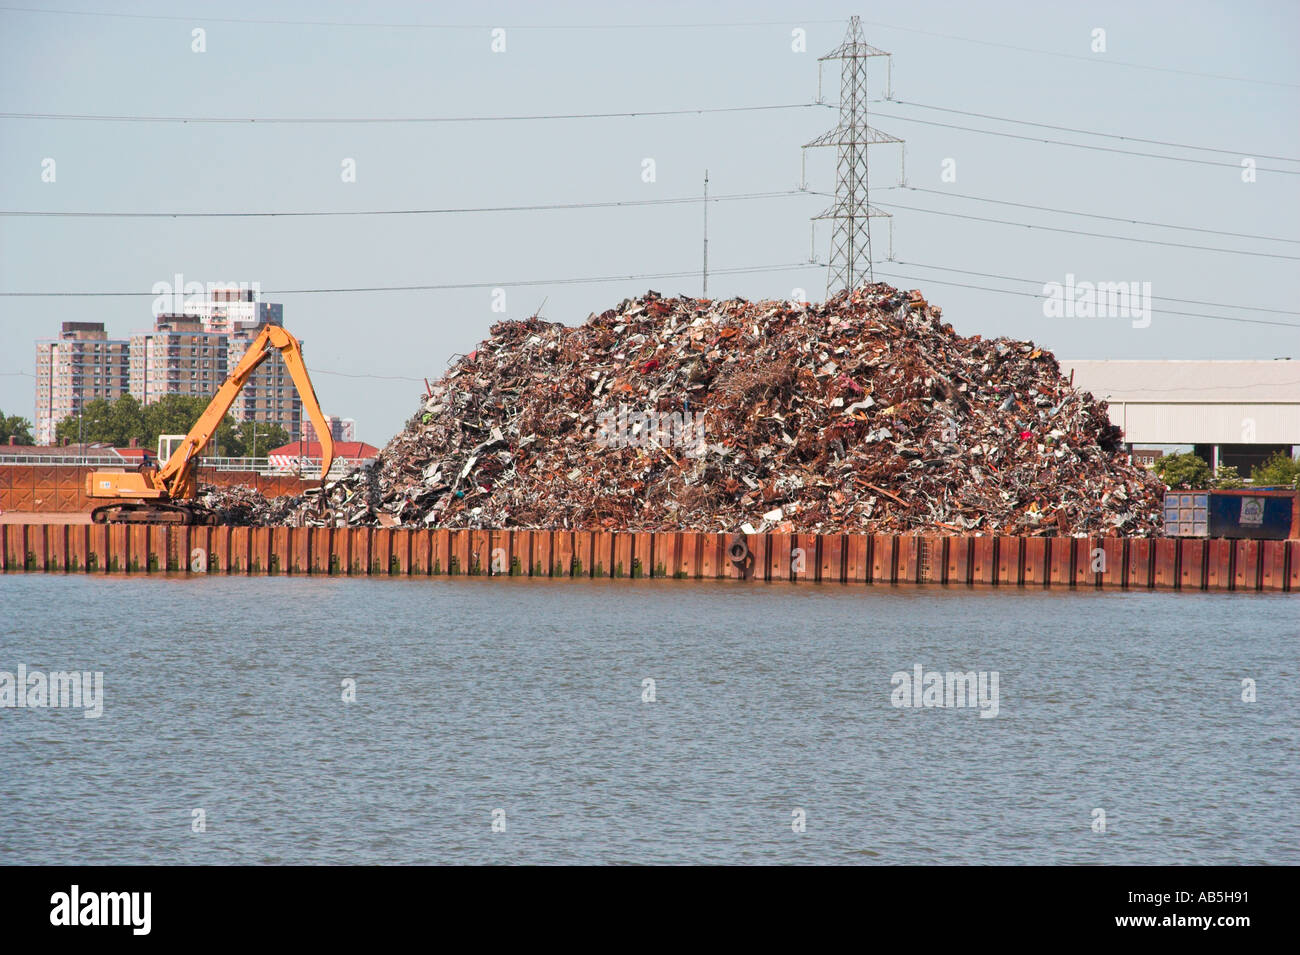 Rubbish dump pile landfill waste produce products man made - Stock Image